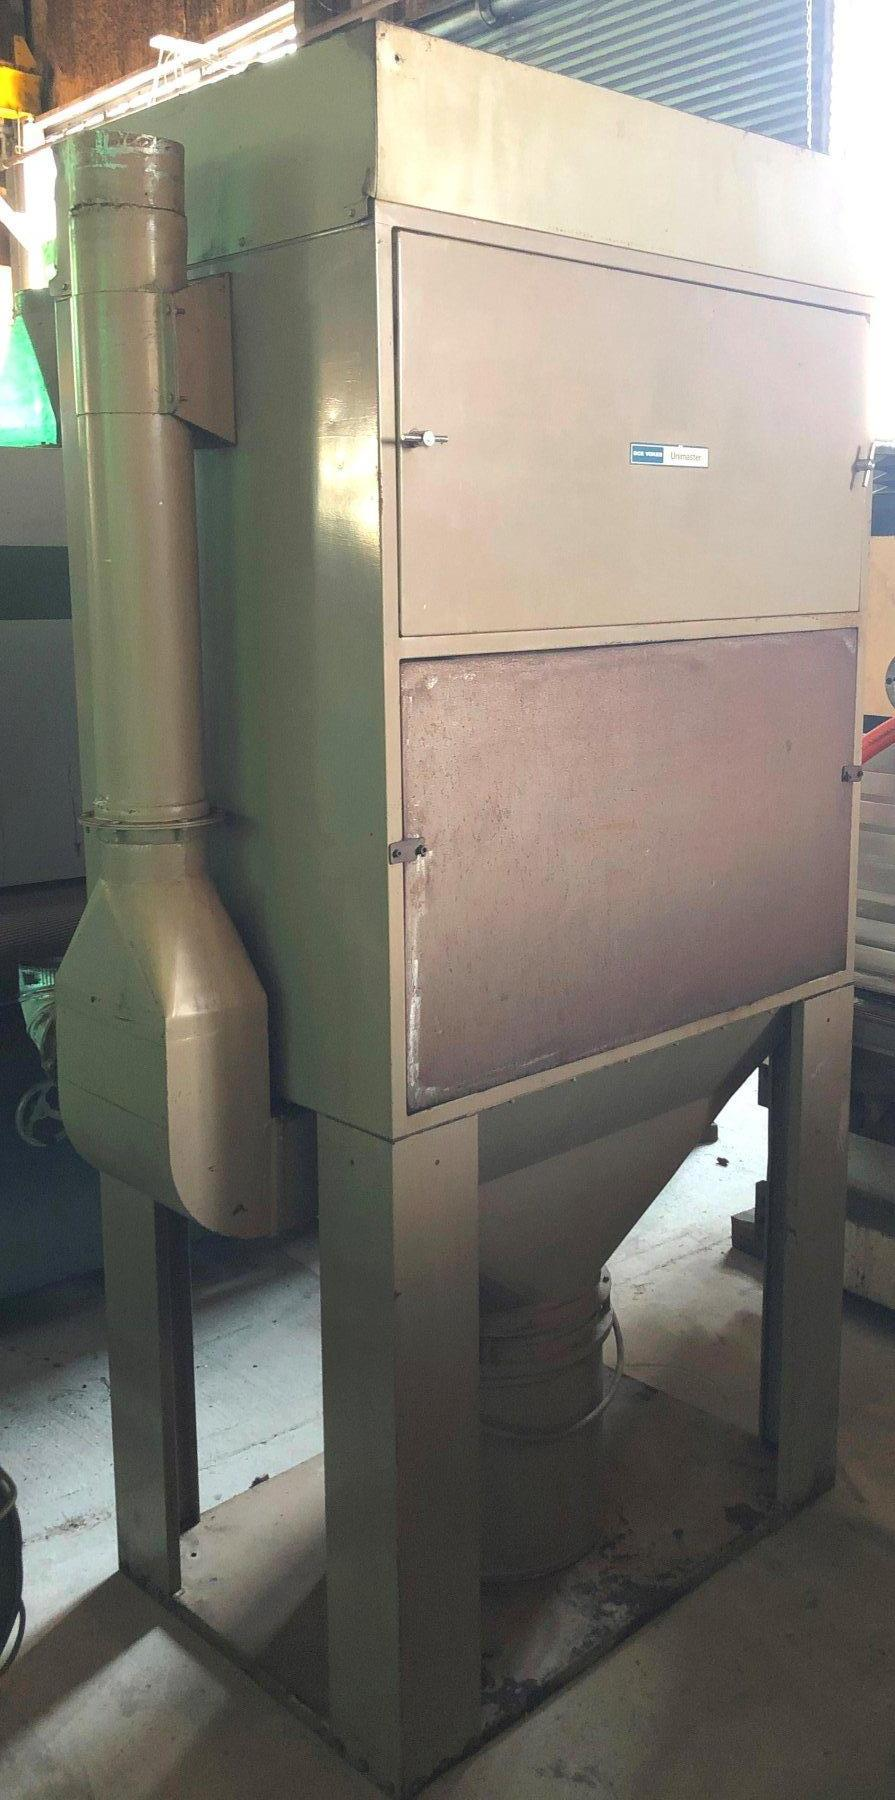 DCE Vokes Dust Collector Model UMA 252 G5, 4 HP